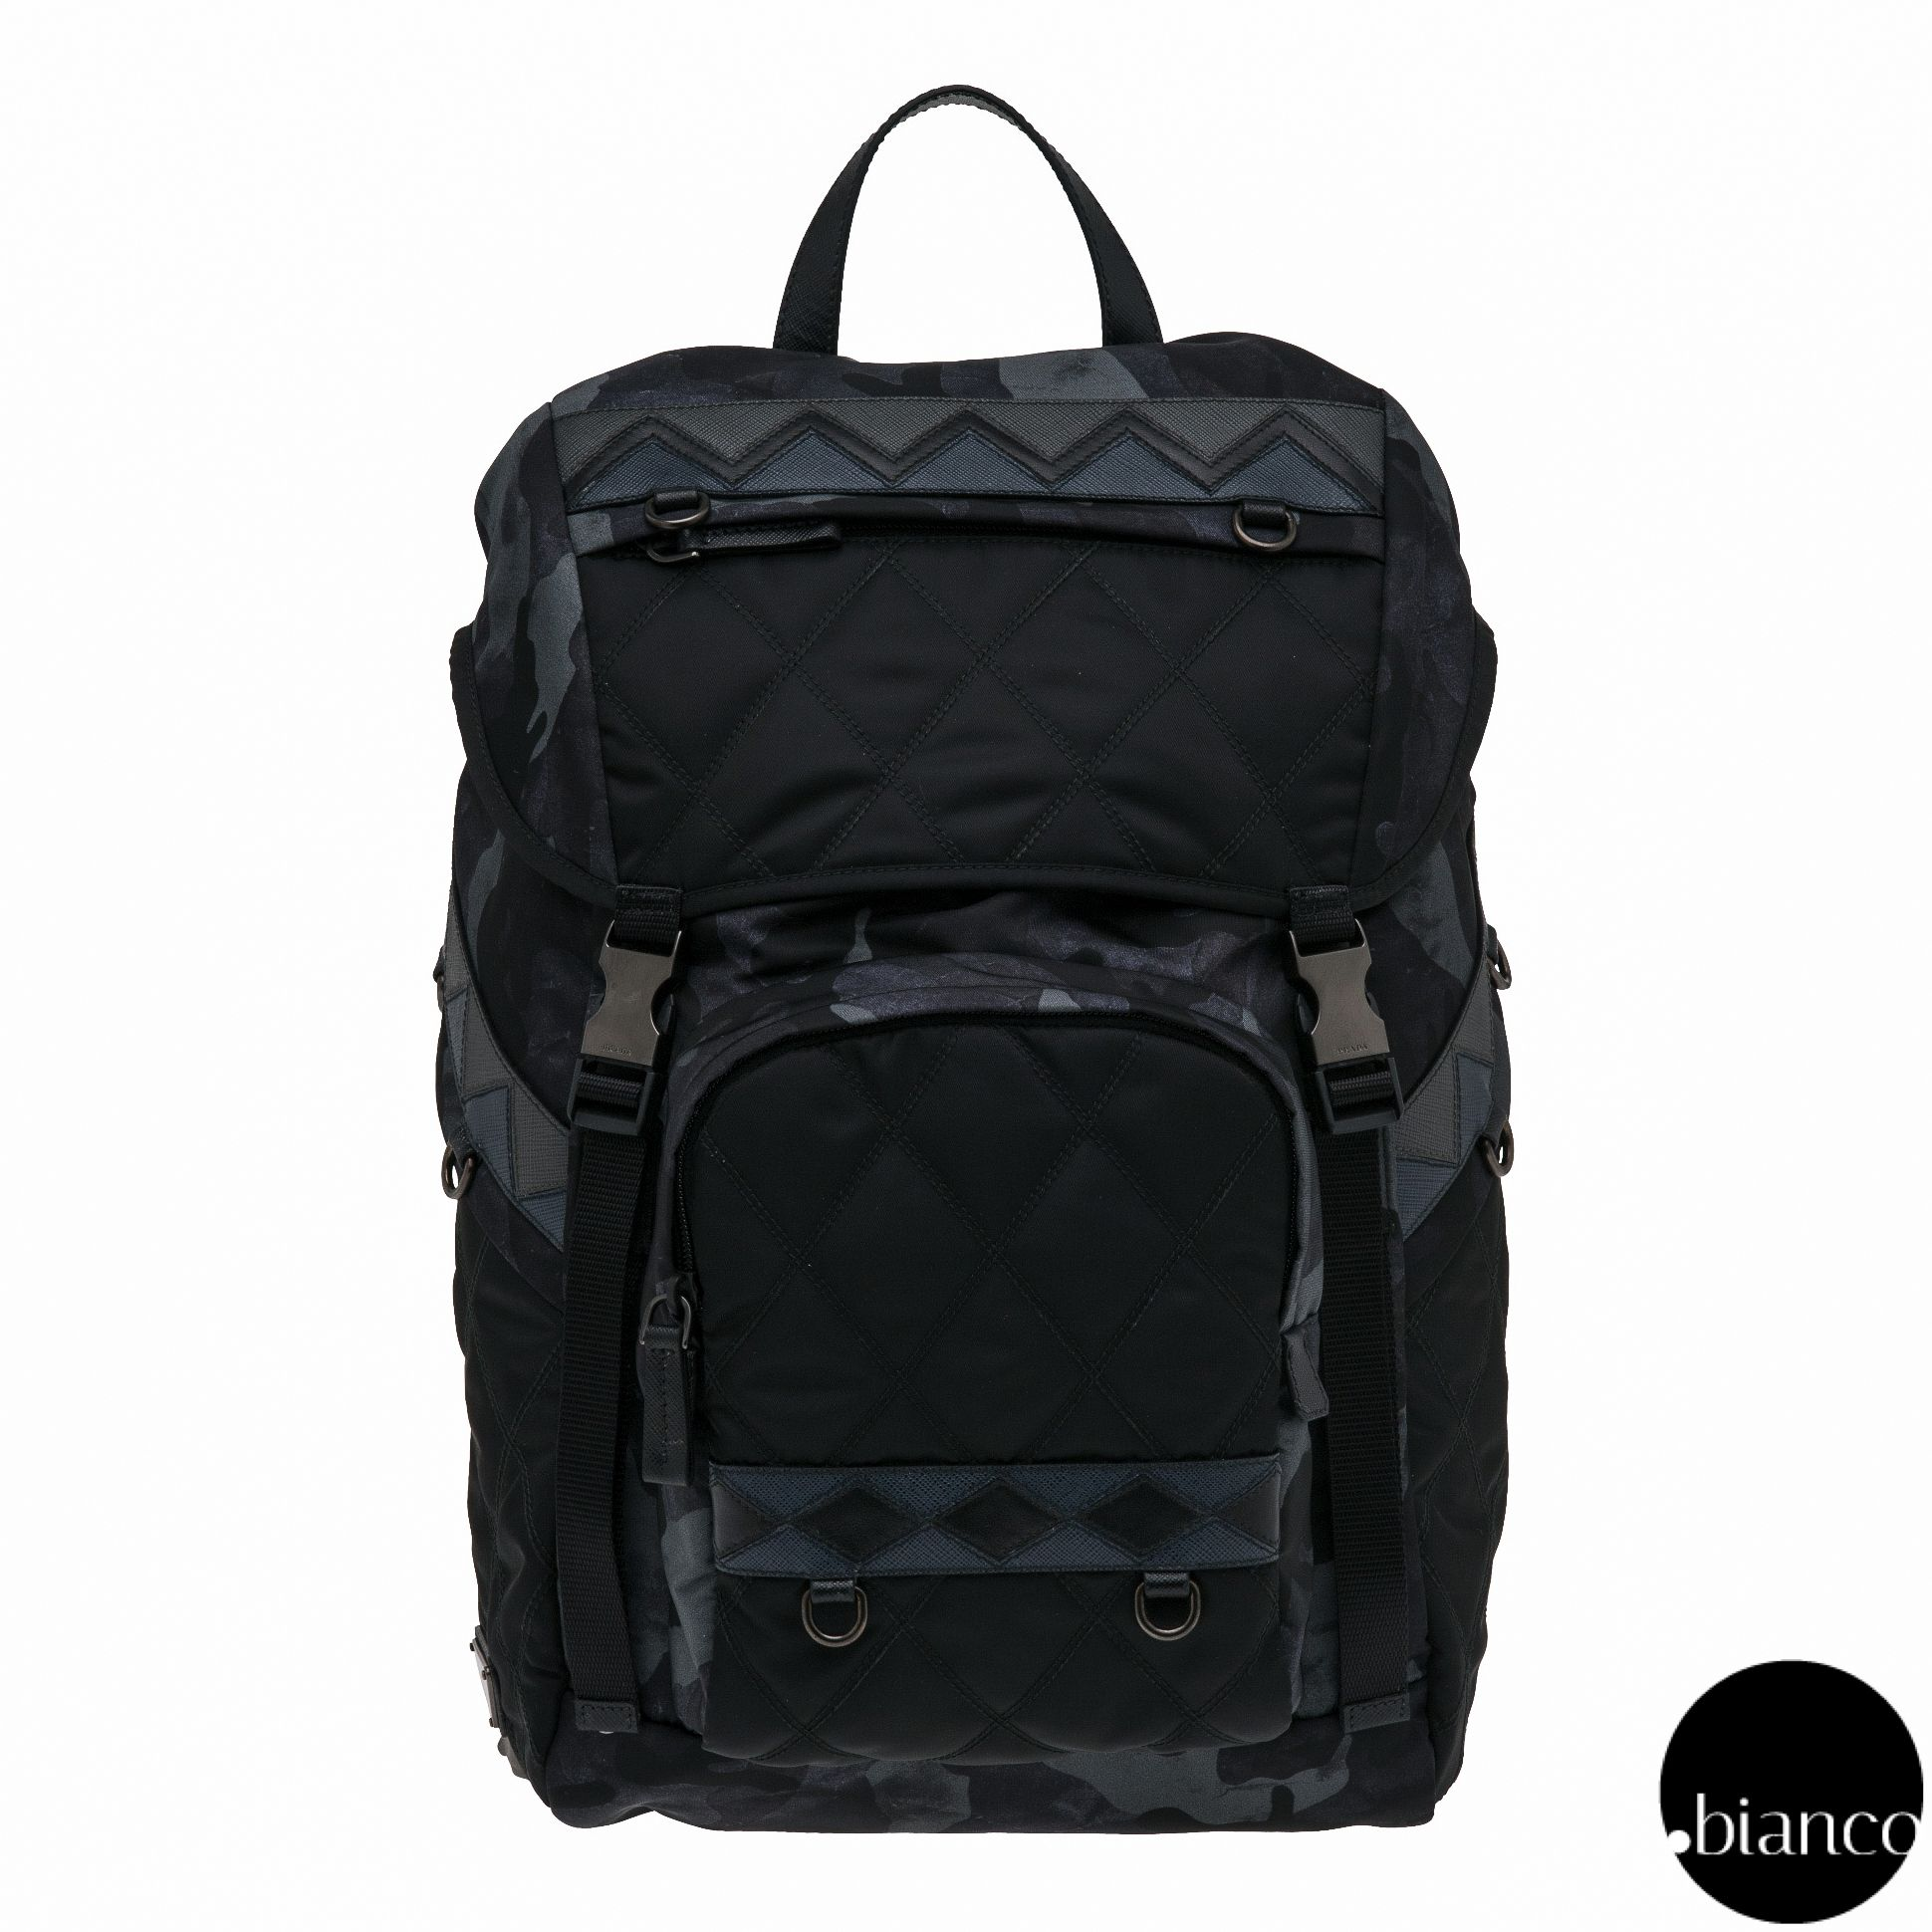 71c7851302df ... ireland prada backpacks camouflage unisex nylon a4 bi color backpacks  7f291 4cc45 ...